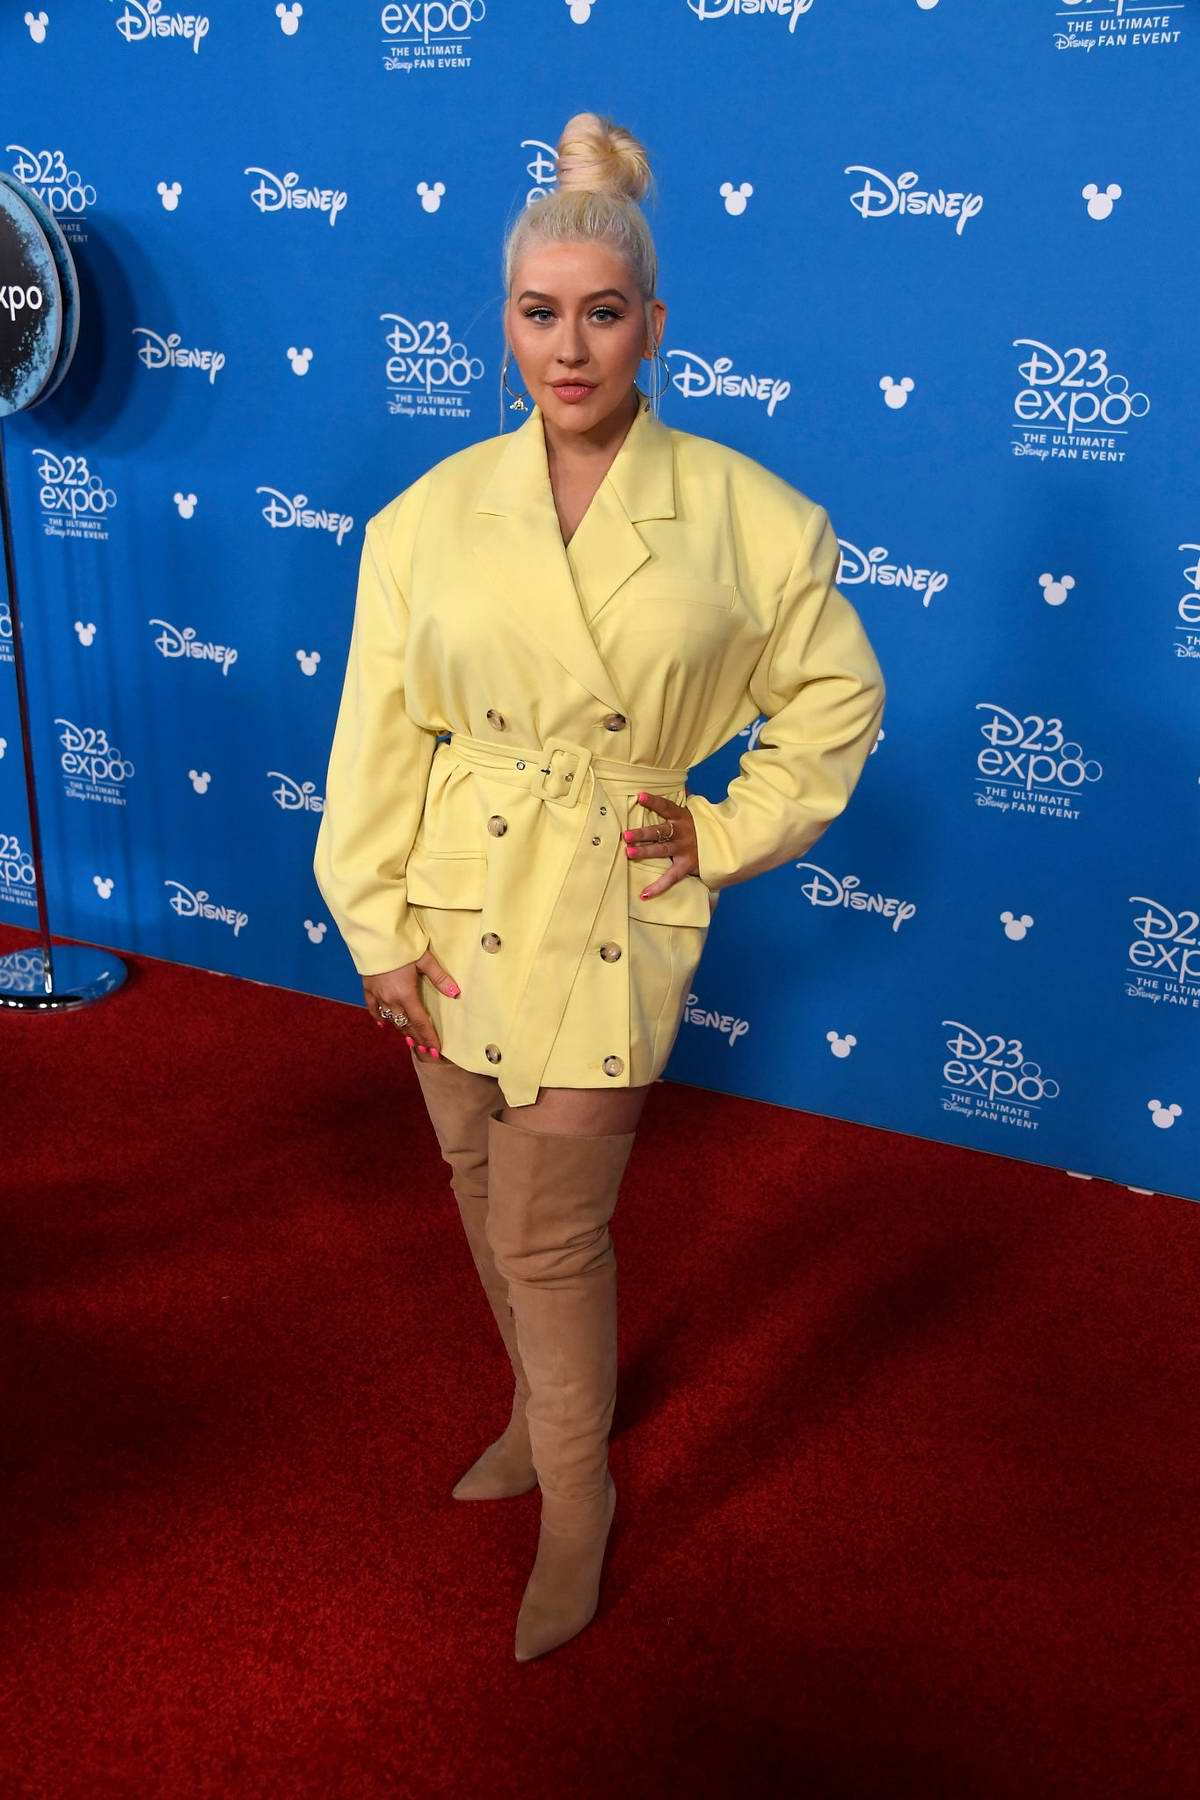 Christina Aguilera attends Disney D23 Expo 2019 at Anaheim Convention Center in Anaheim, California